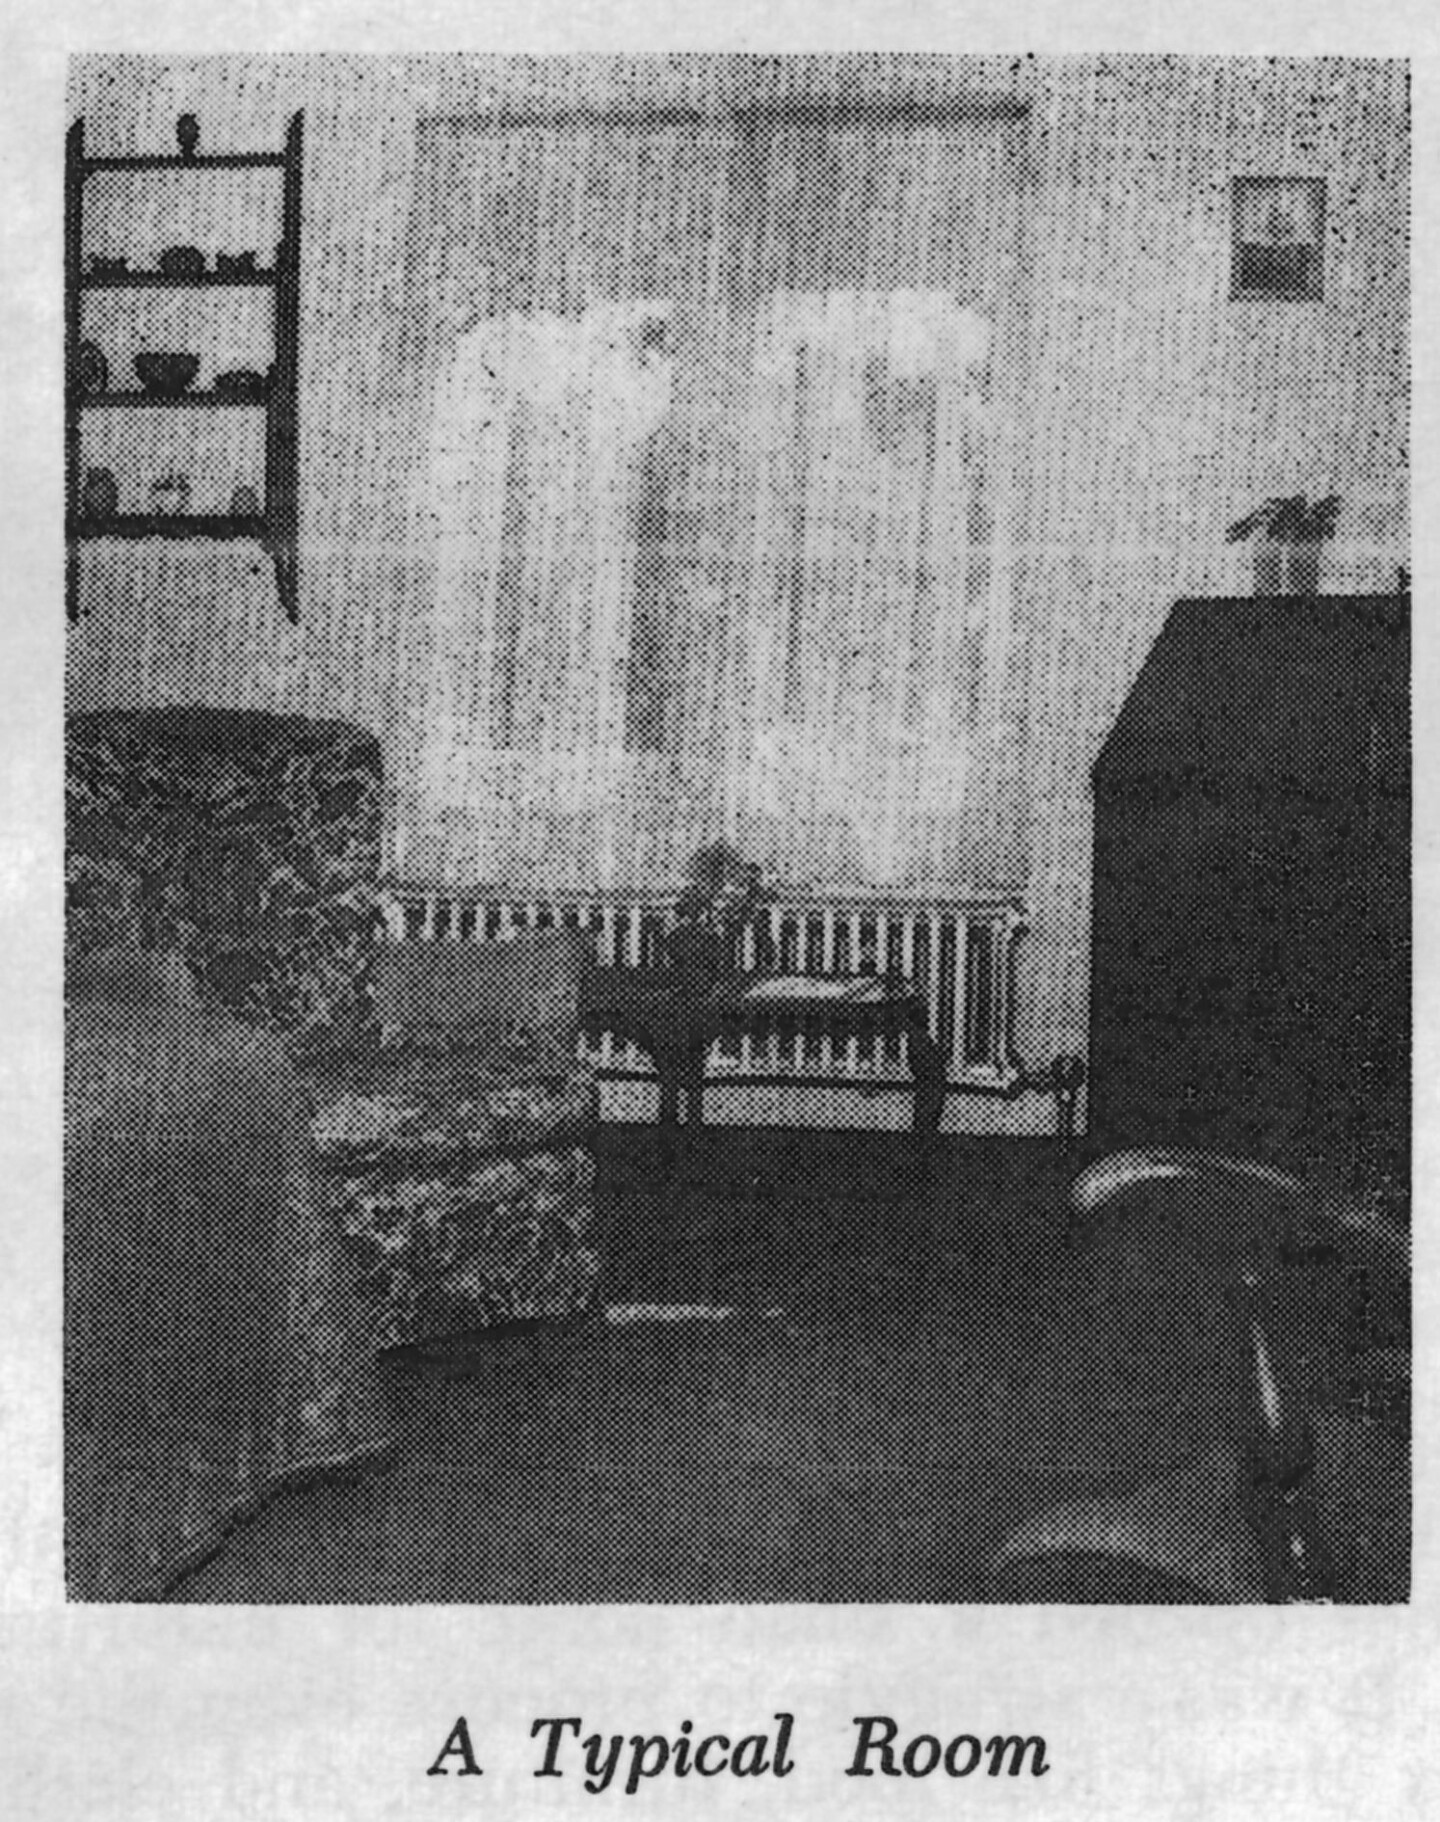 A black and white photo of a single room at the Woman's Christian Temperance Union Home. There is a floral arm chair, shelving with various items and a big window with sheer curtains.